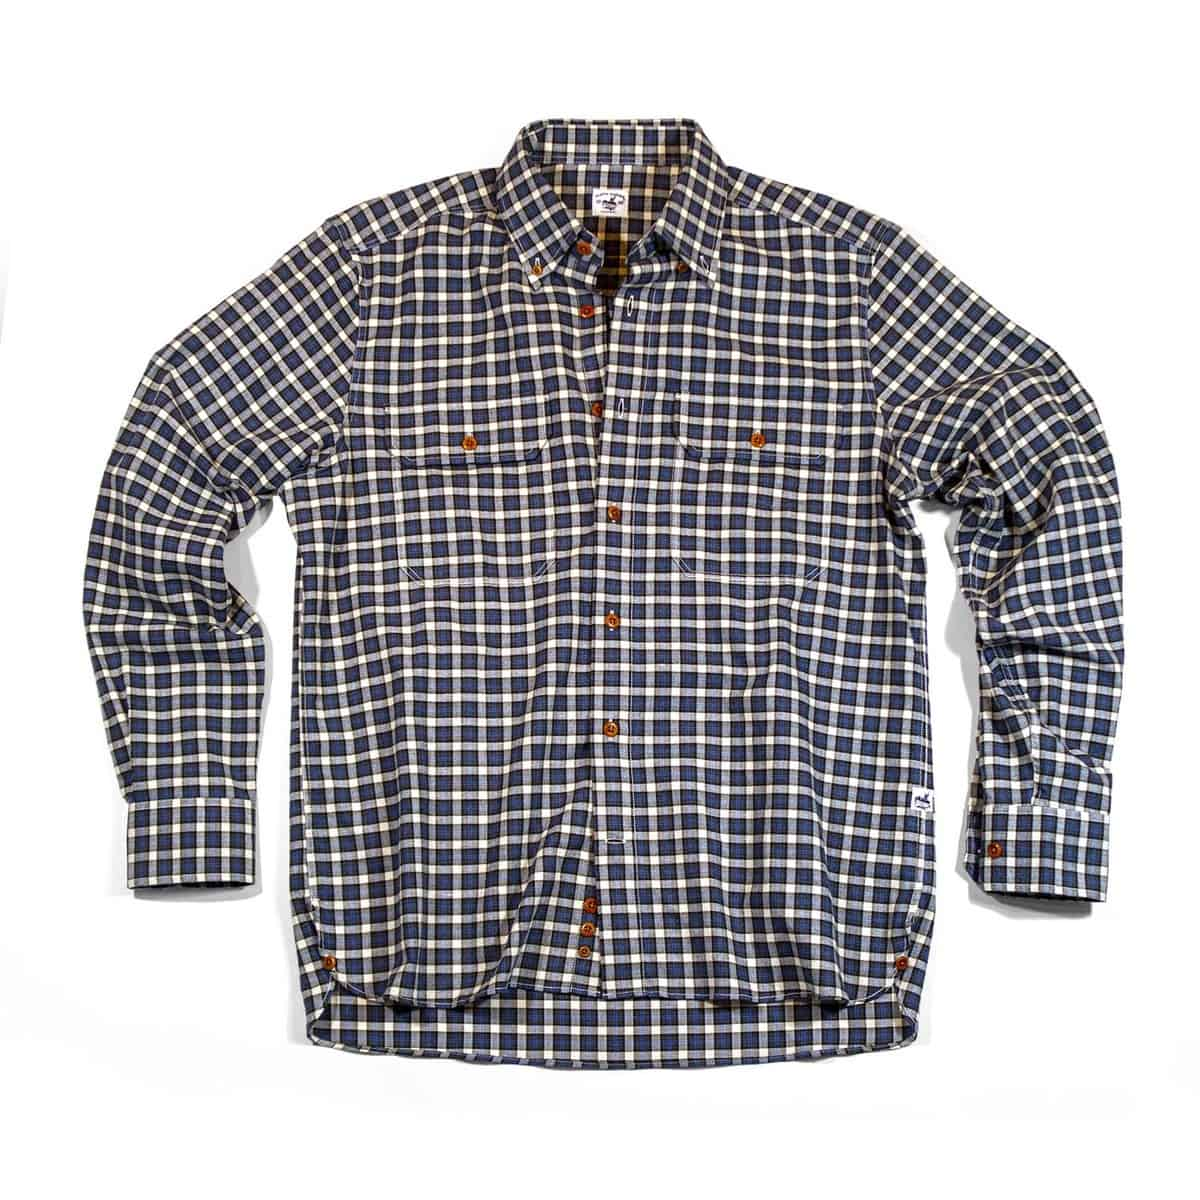 Bayman's Flannel Button-Down Collar Shirt - Blue Tick